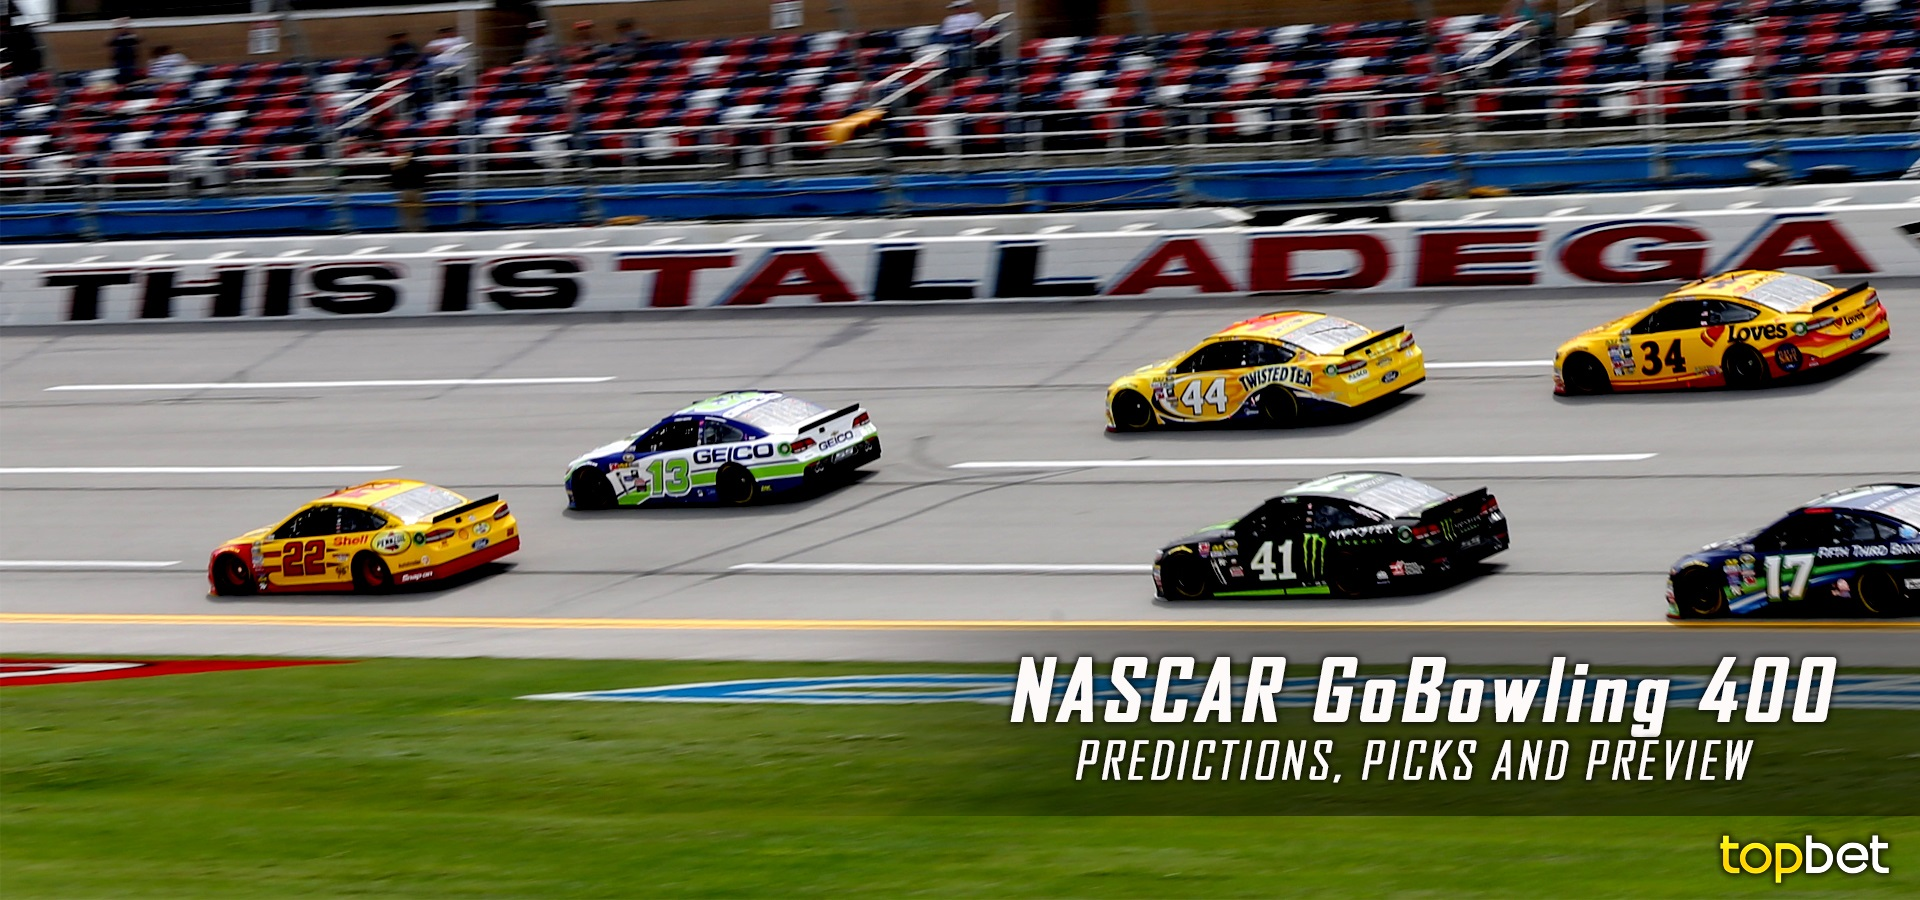 Odds to Win NASCAR Pocono 400